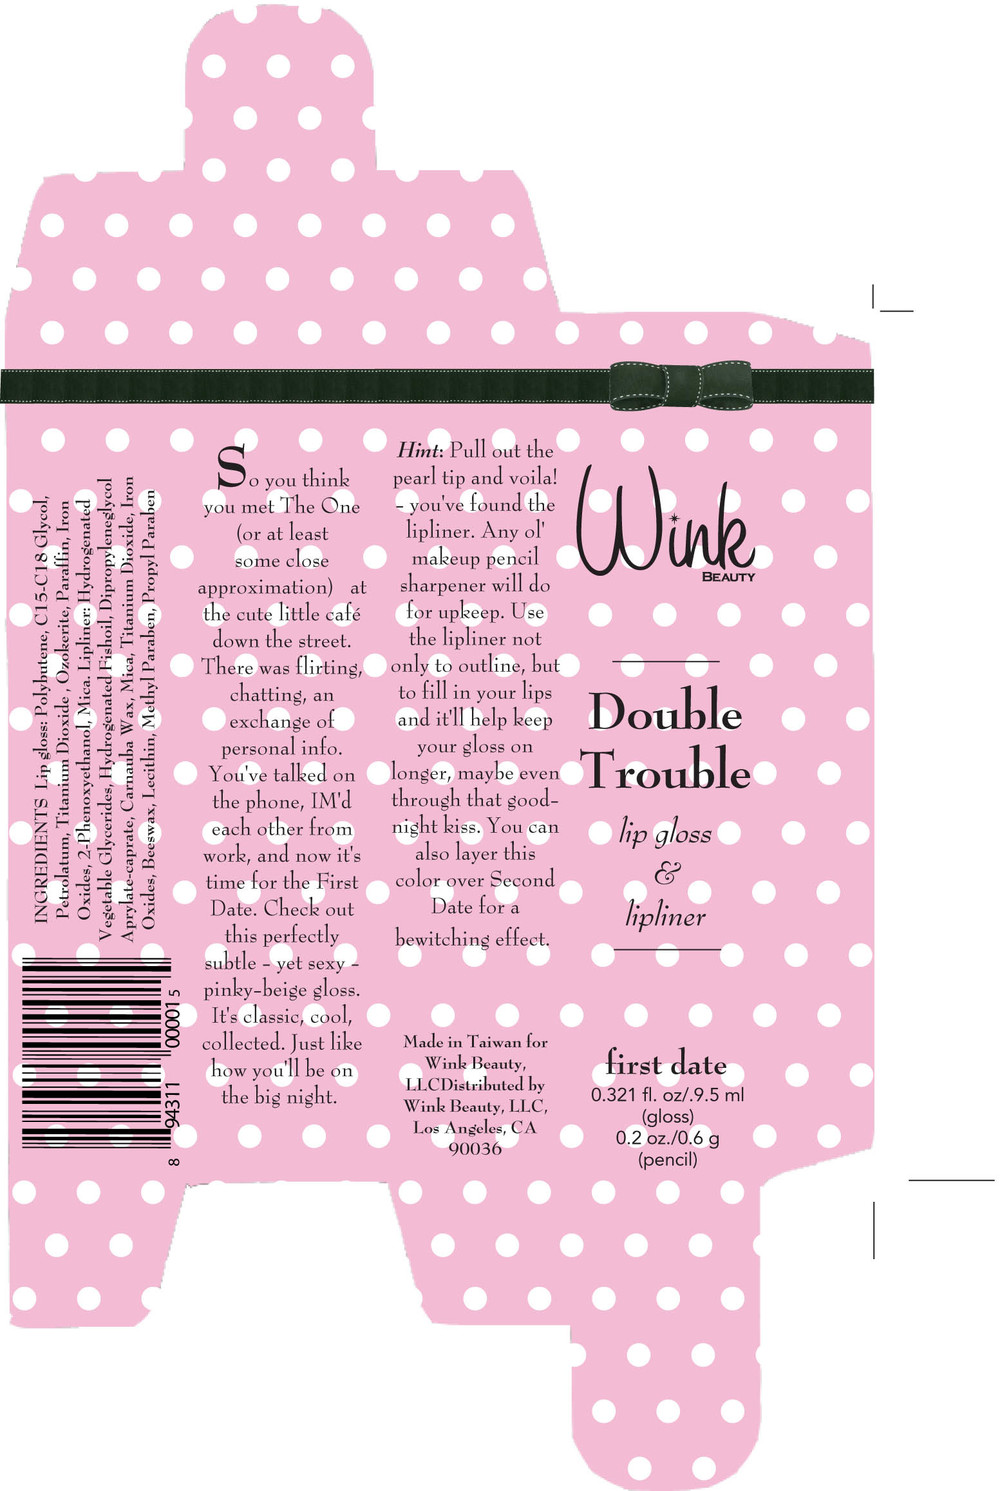 Double Trouble box design and copy